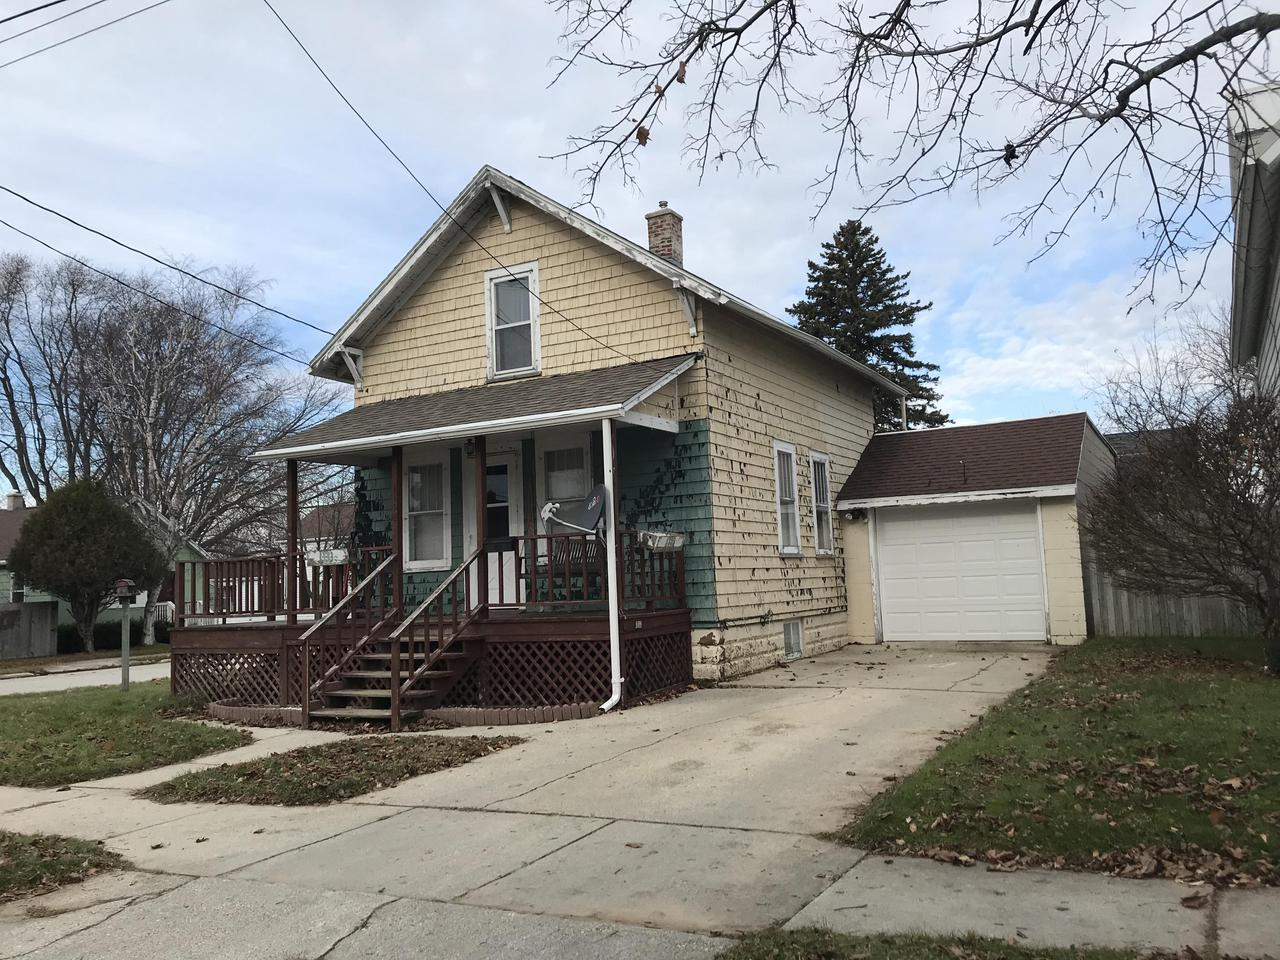 3 BR fixer upper across the street from East Twin River on Two Rivers' East Side. 2 BR upper and one on main level. Large Kitchen with many cabinets and counter top. Central air and GFA put in by seller. Close to shopping, restaurants and bike trail and park.  Being sold ''as is''.